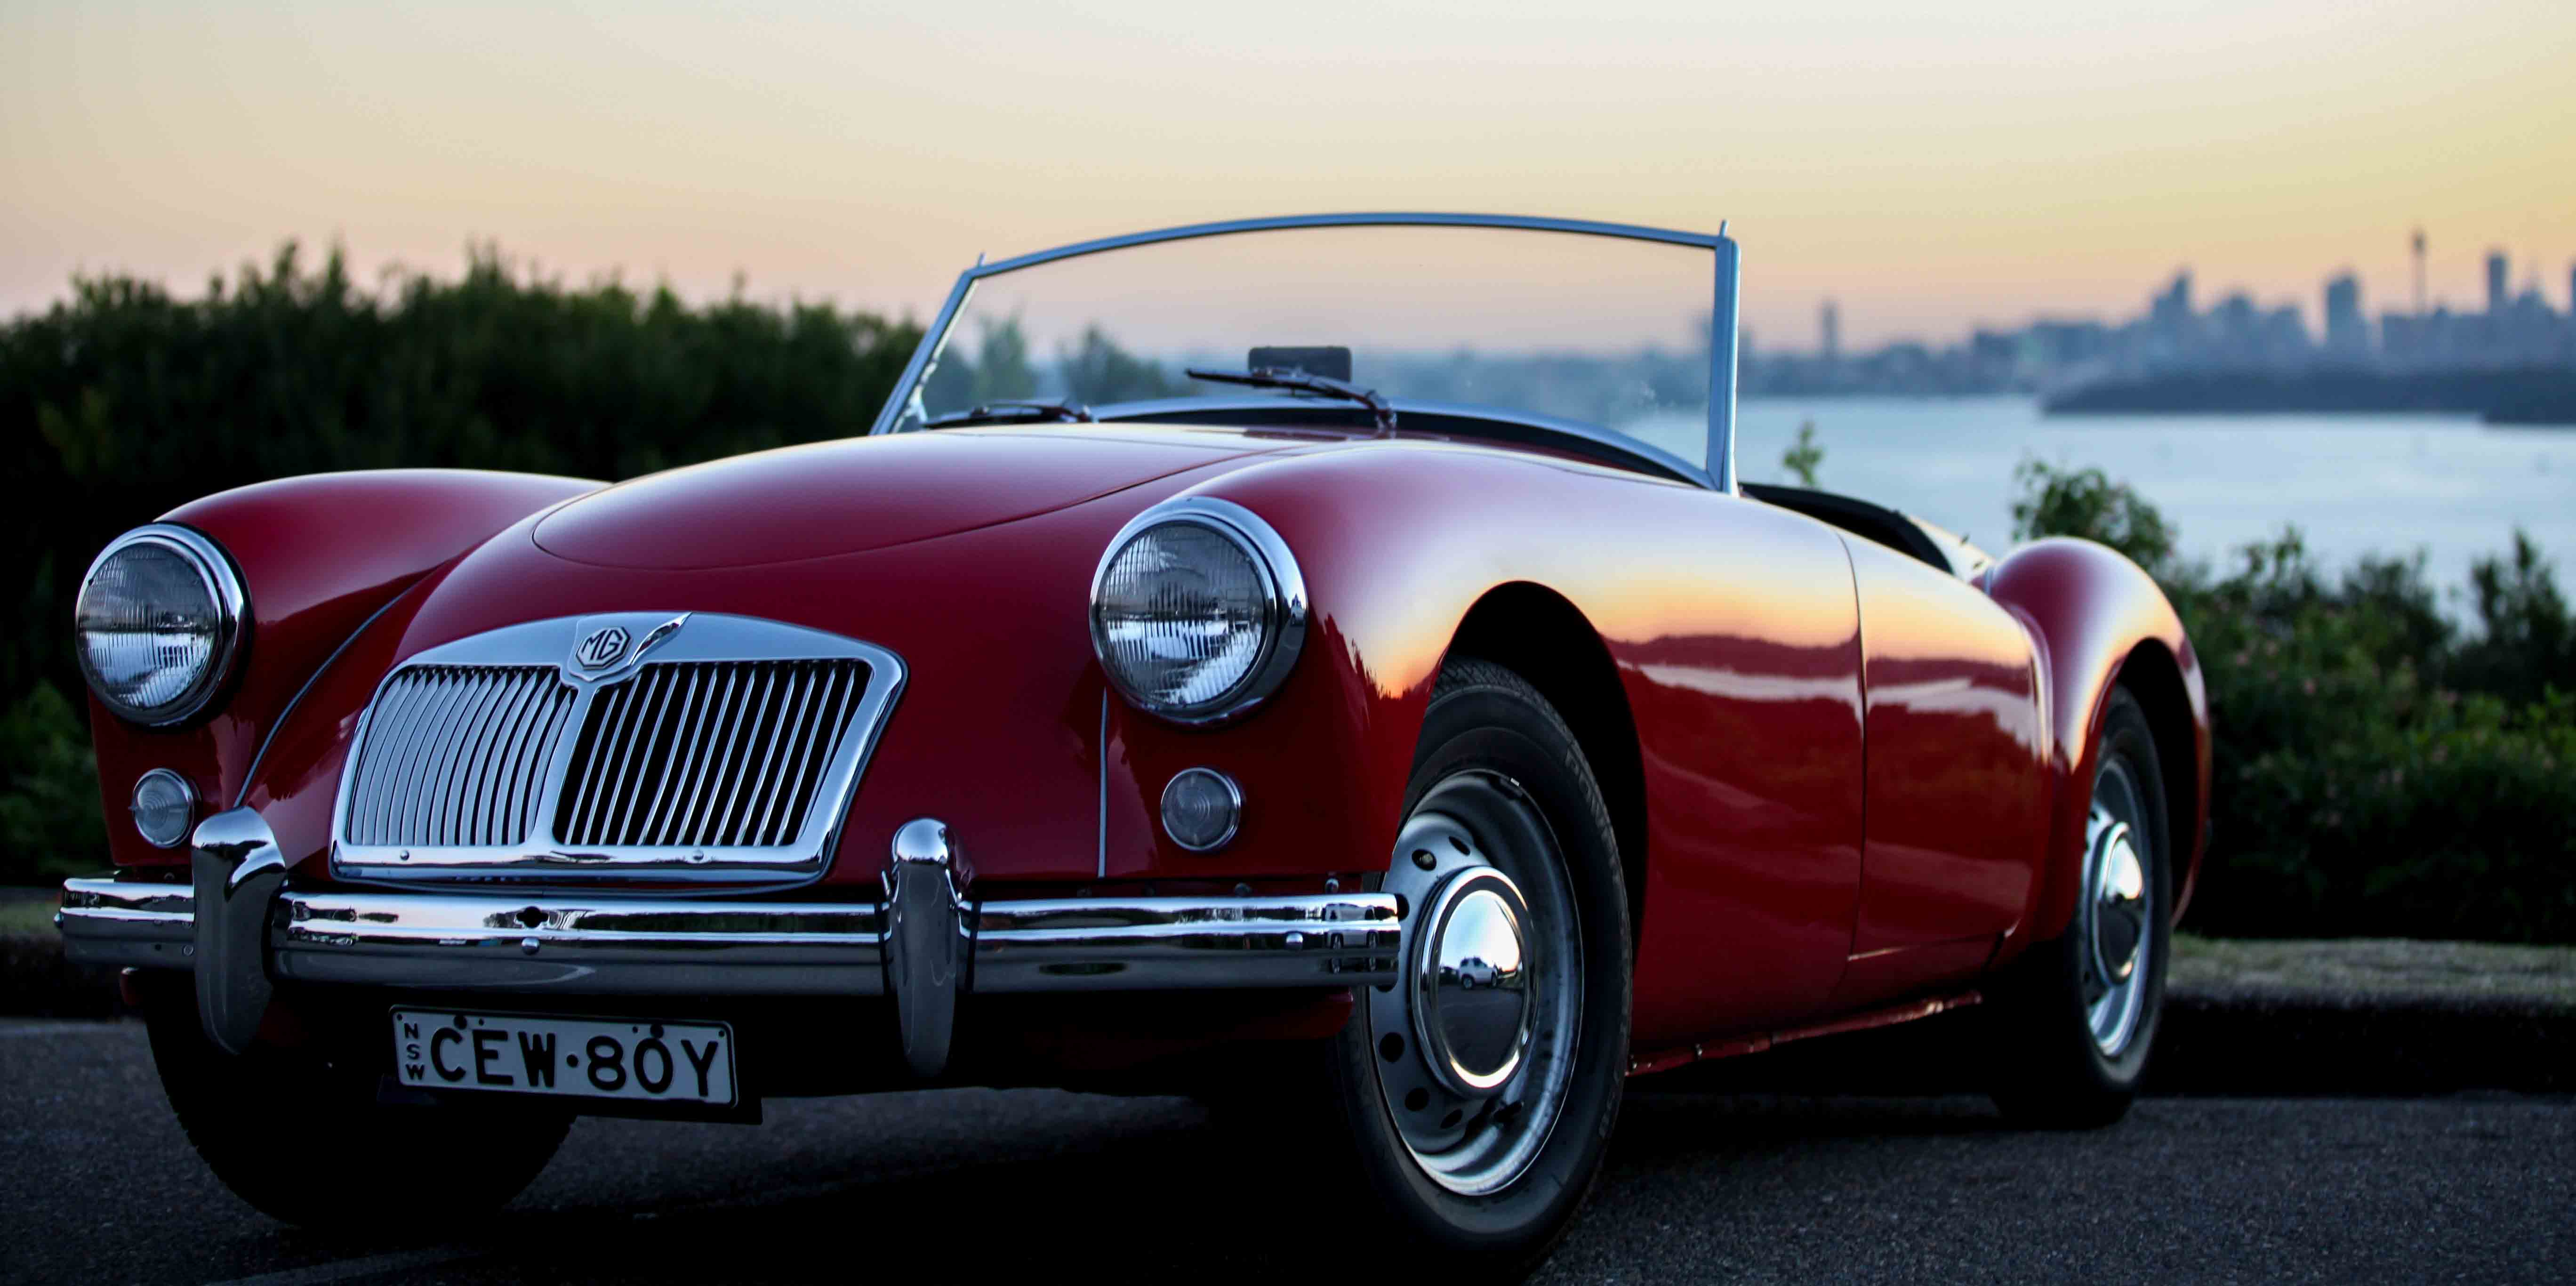 Sydney Classic Car Hire For Photoshoots Or Wedding